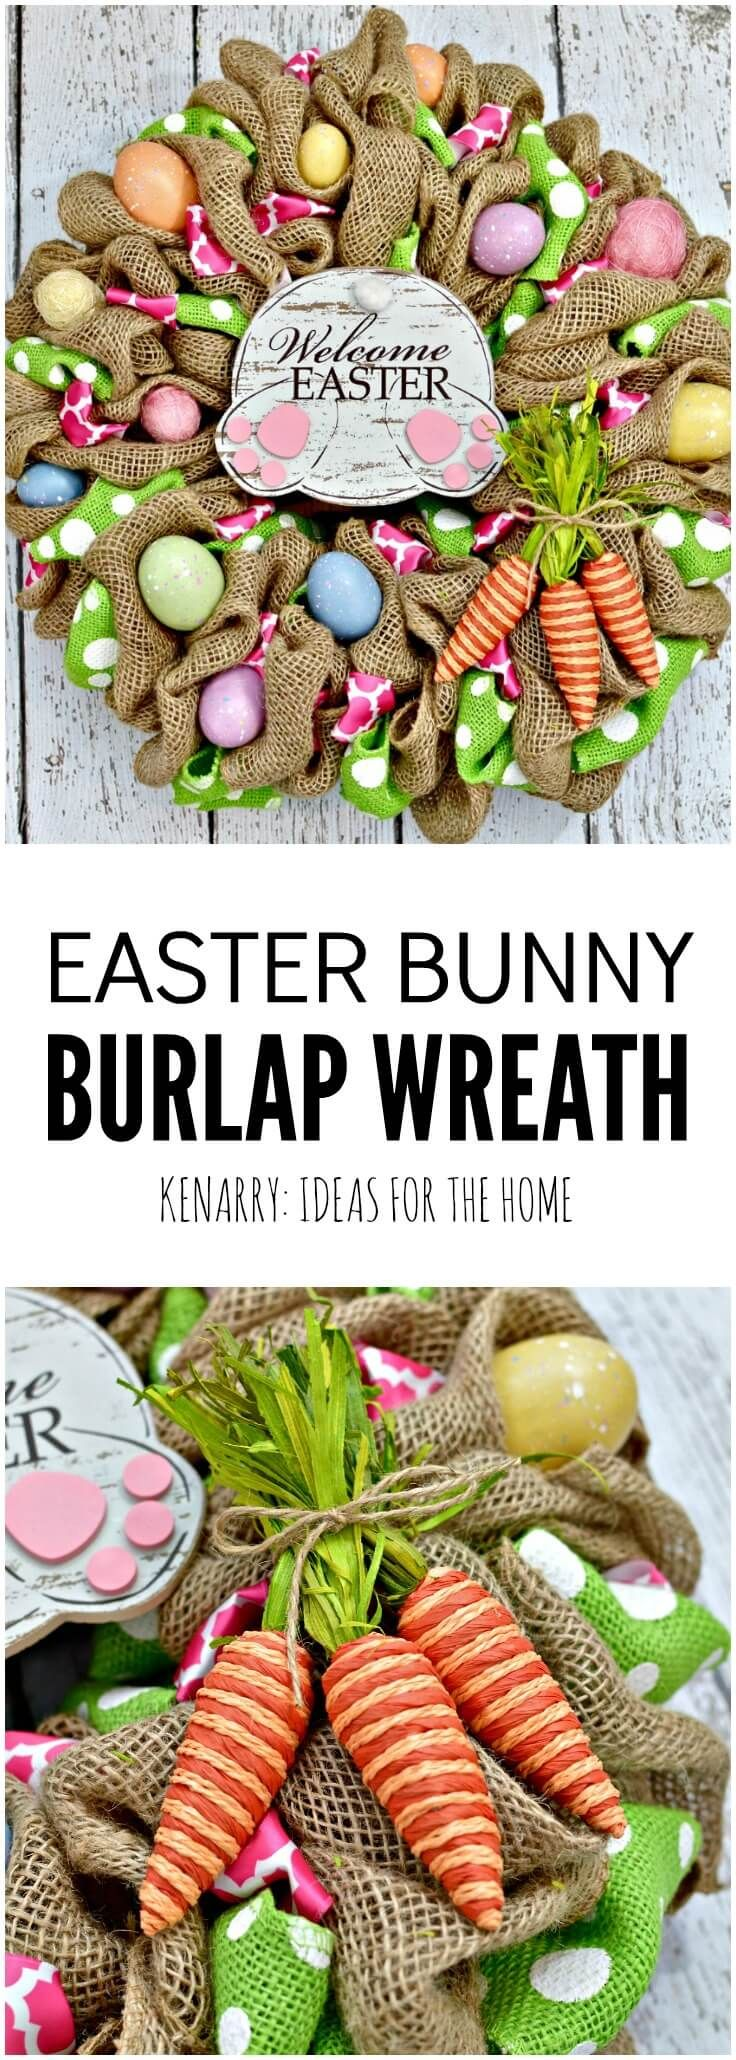 4351 best bunny gifts for rabbit lovers images on pinterest easter easter bunny burlap wreath an easy craft idea and tutorial negle Images